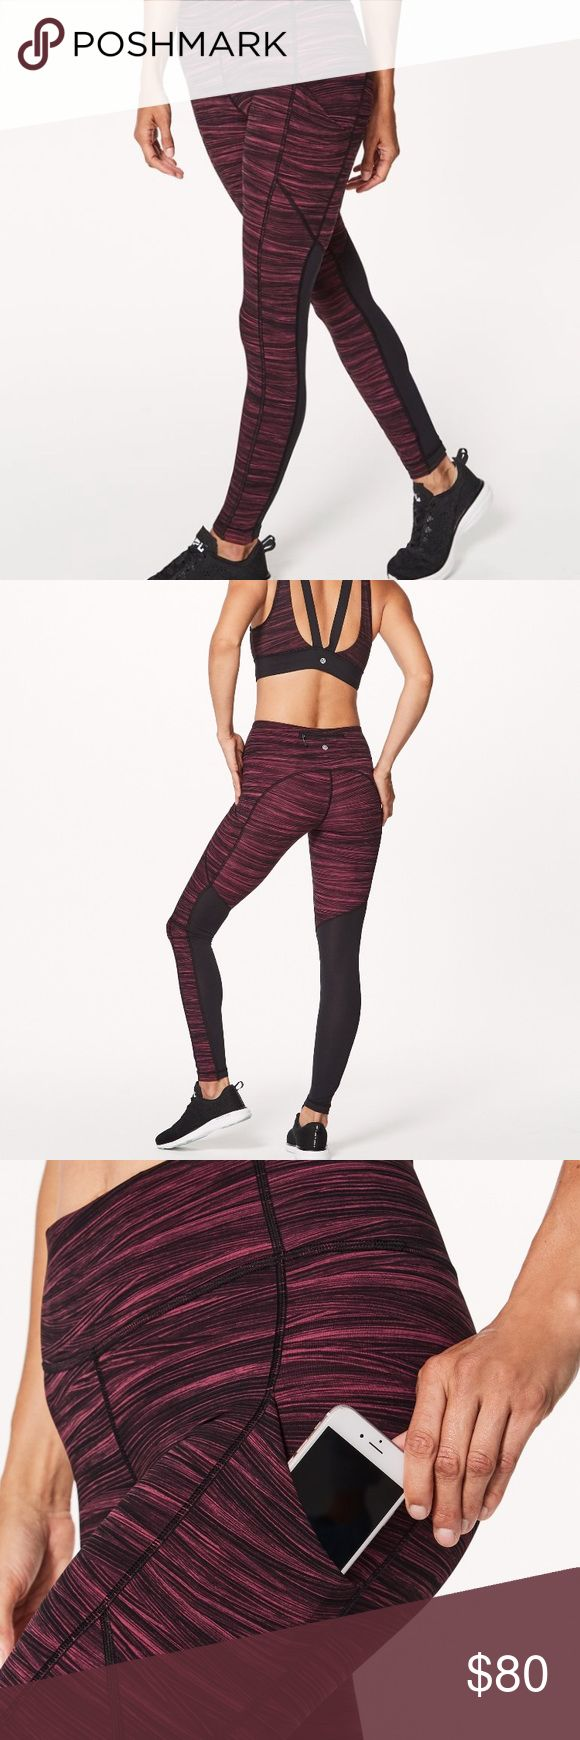 Lululemon Speed Tight V New with tags speed tights from Lululemon. Color is called low tide Blush berry black. I found these on MD at a local store but they are still full price ($108) online. Size 6. Perfect for running, just trying to clean house. lululemon athletica Pants Leggings